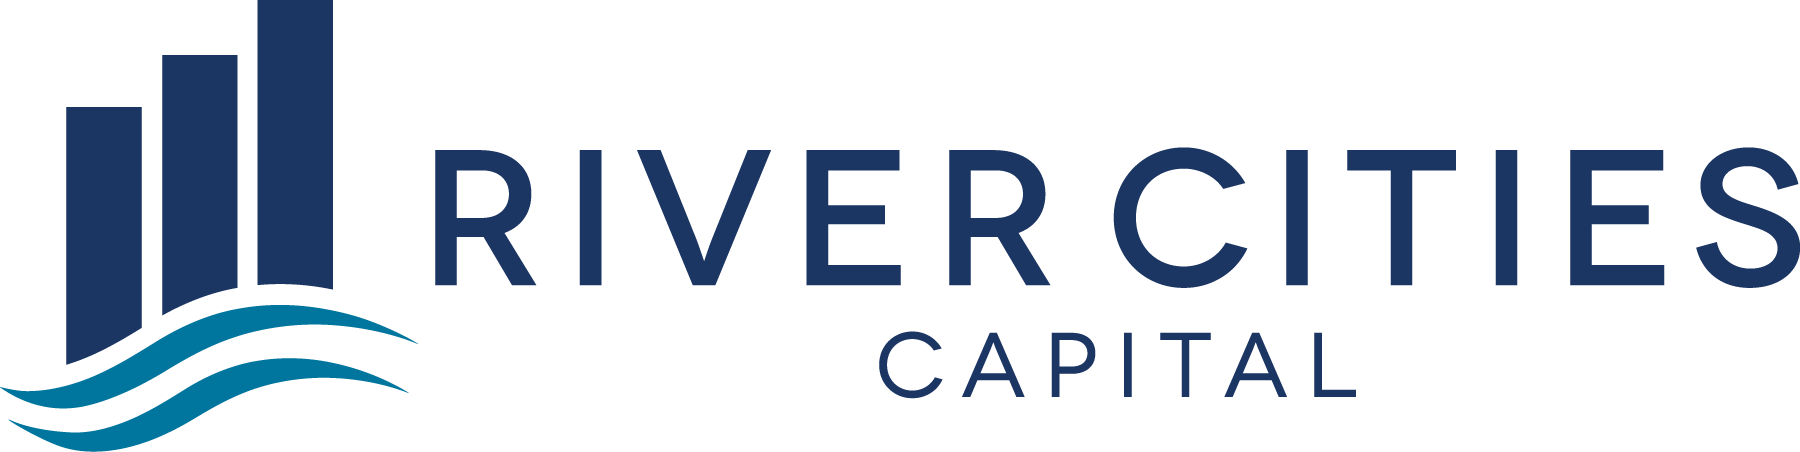 River Cities Capital